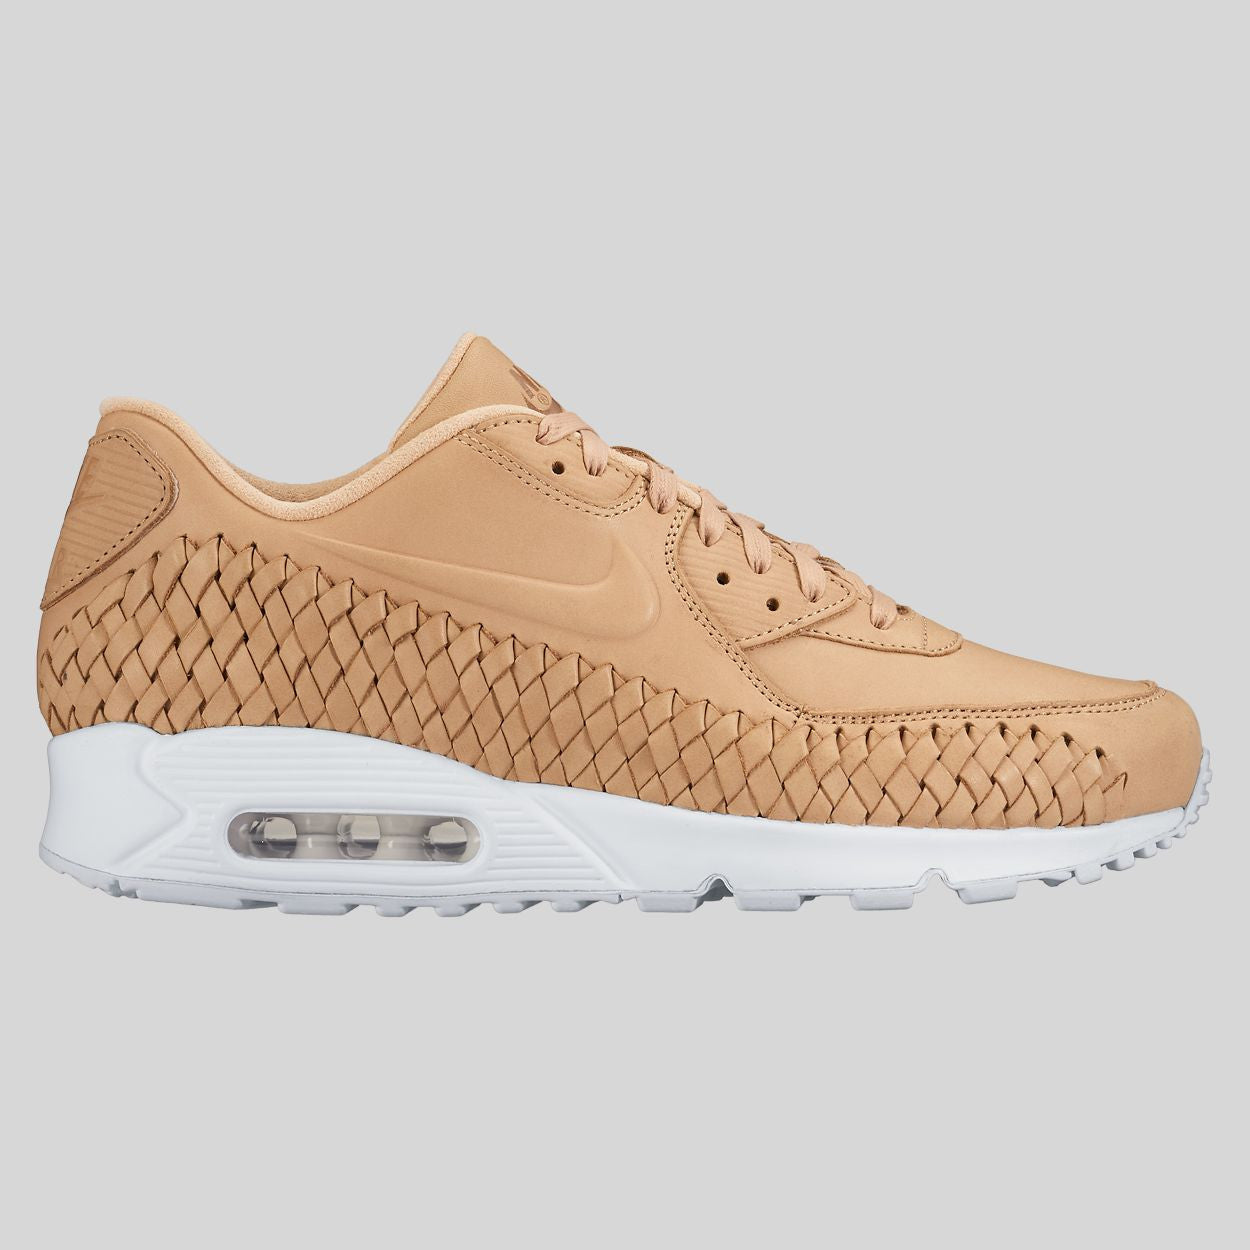 Nike Air Max 90 Woven Unisex Light Grey White Shoes 833129 002